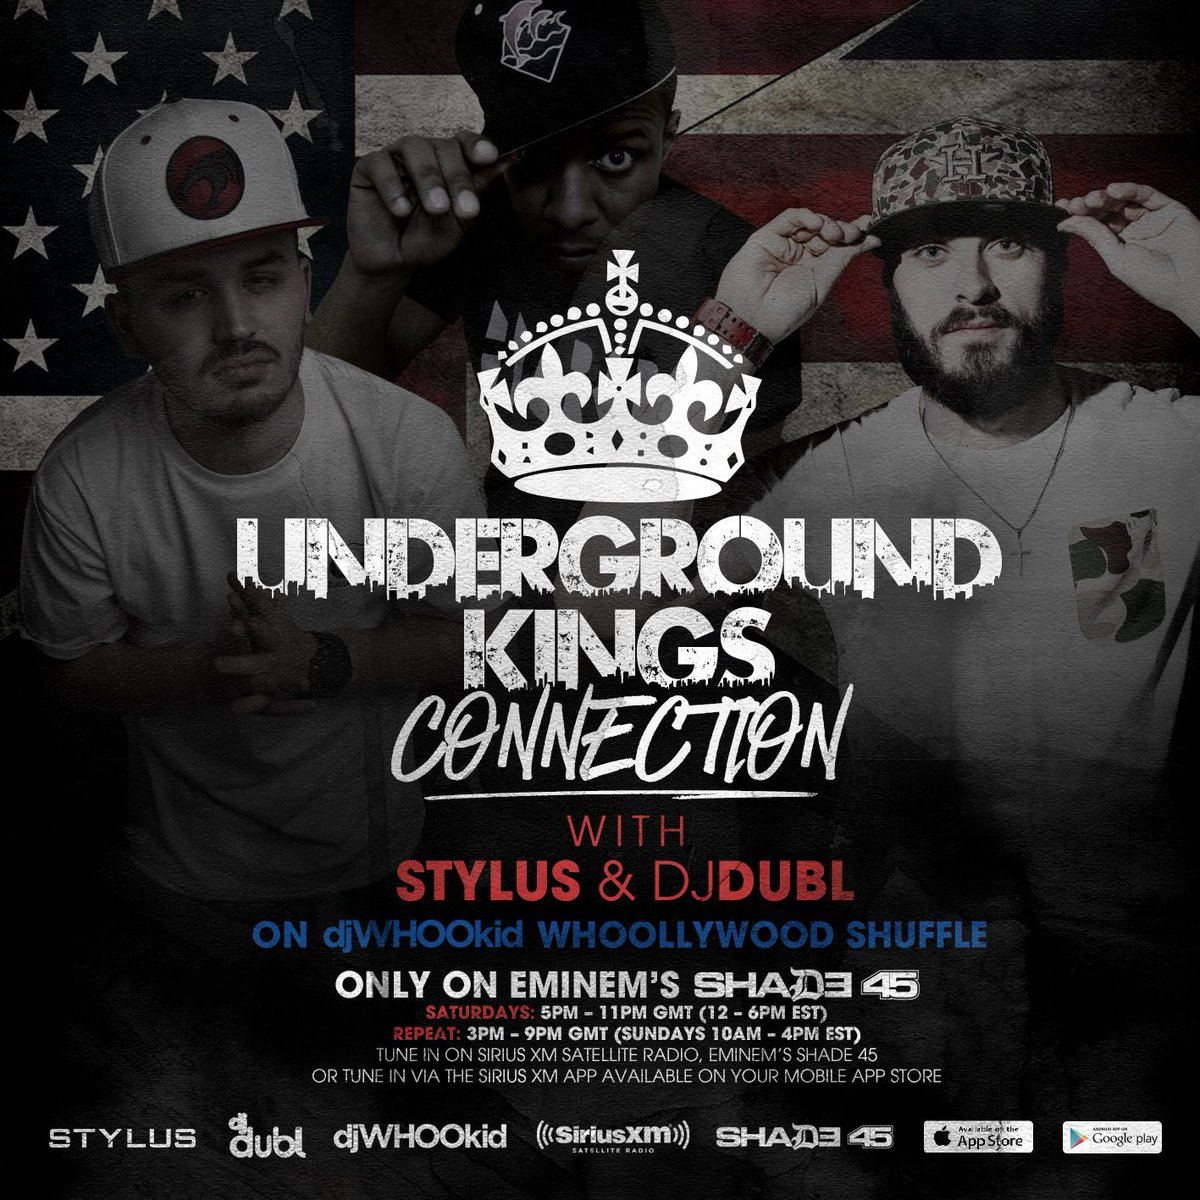 IT'S OFFICIAL! #UndergroundKings - now reaching across the pond in a new WEEKLY feature on @Shade45 w/ @DJWhooKid!!! https://t.co/2RazVJVp7f